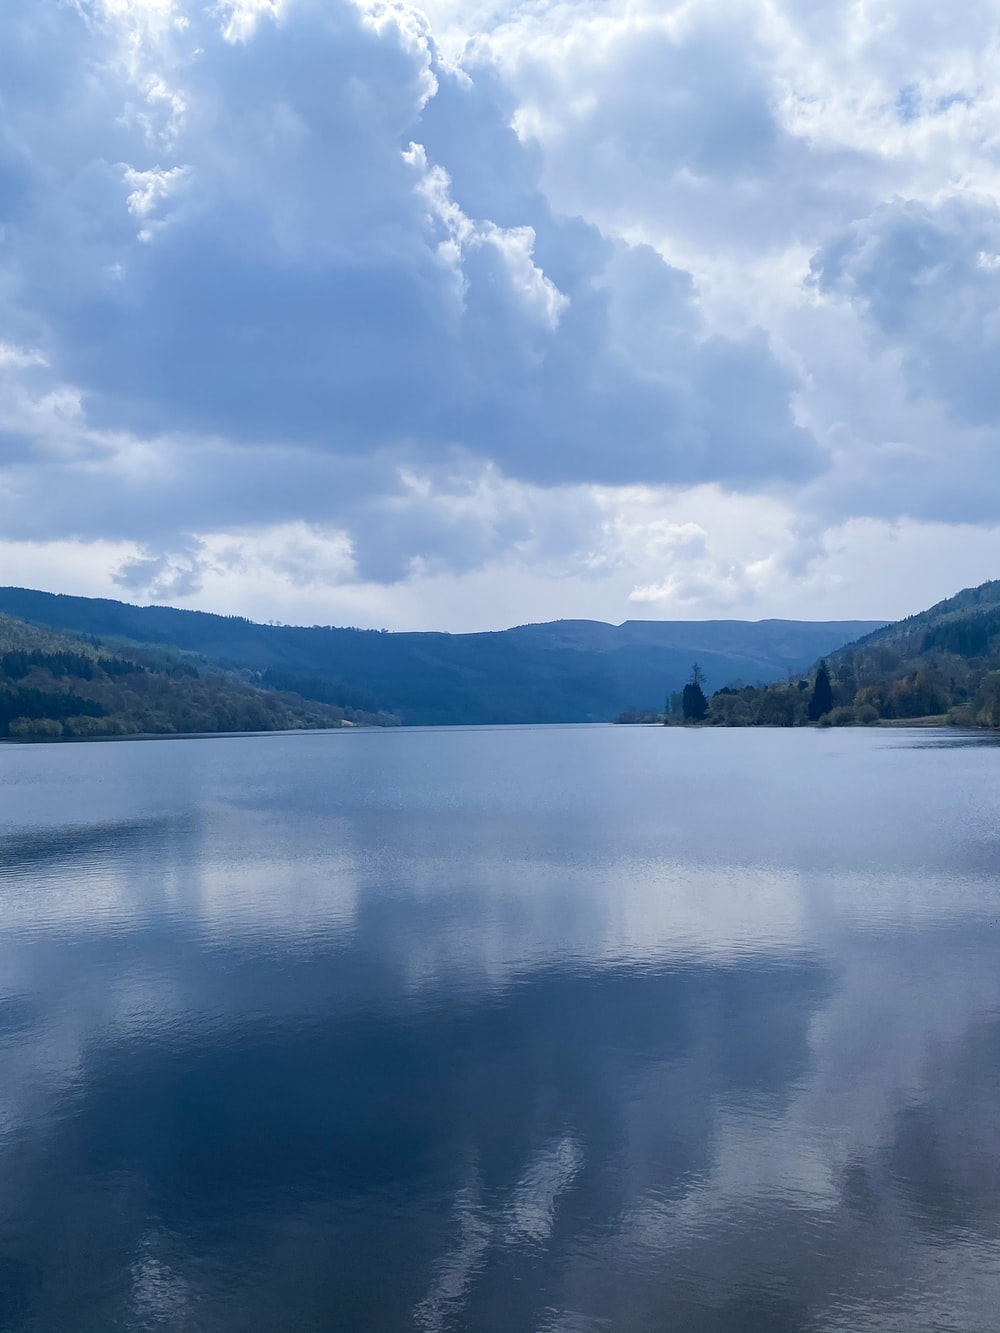 body of water near green mountains under white clouds and blue sky during daytime